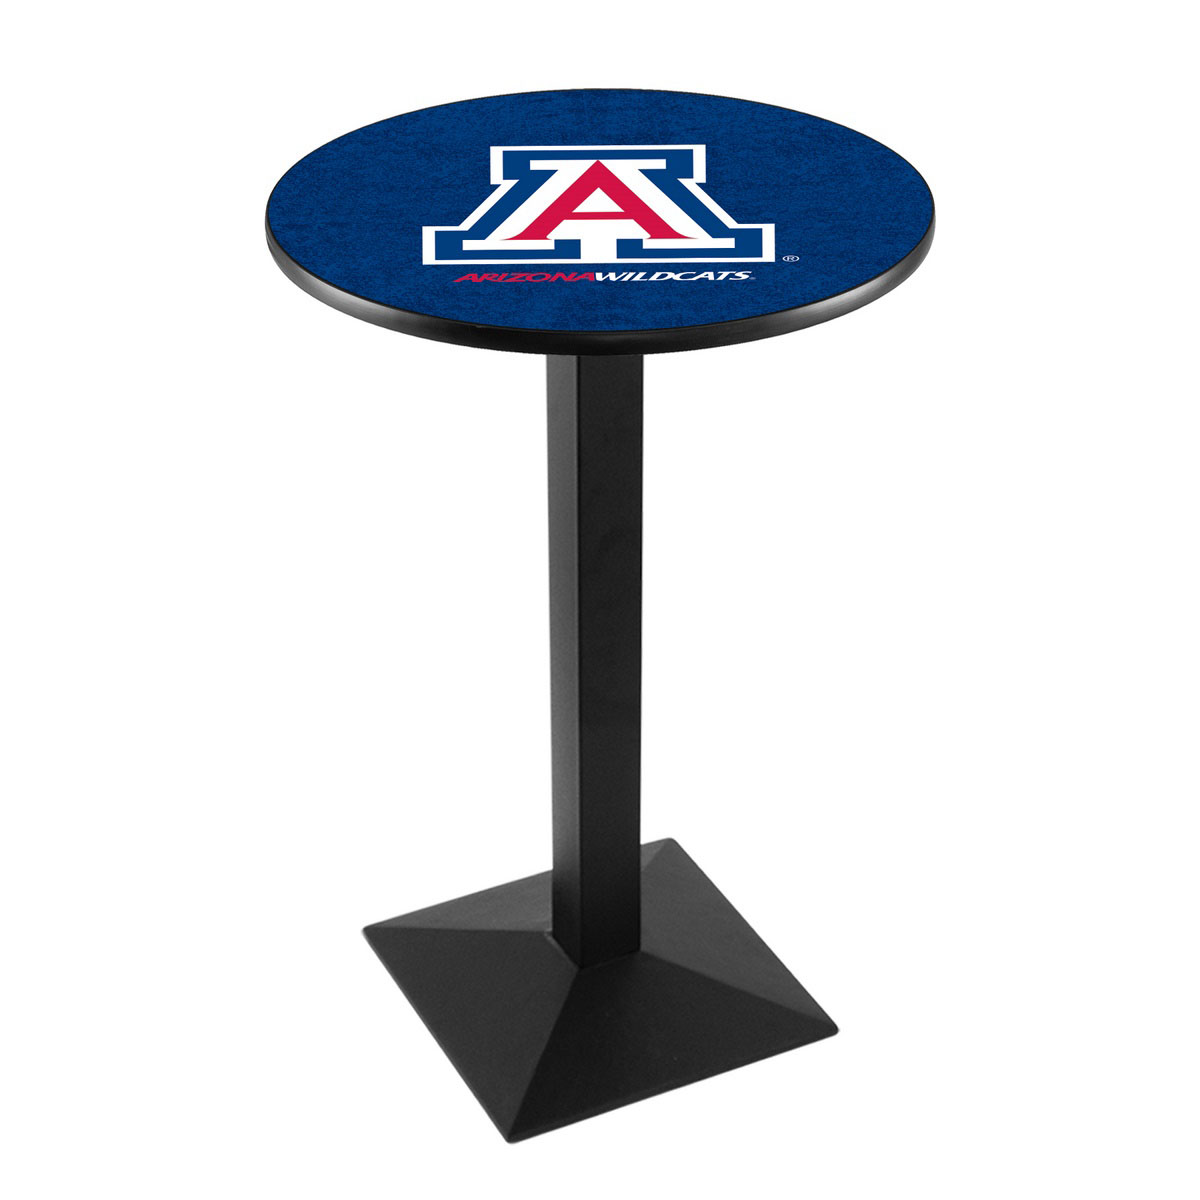 Popular University Arizona Logo Pub Bar Table Square Stand Product Photo